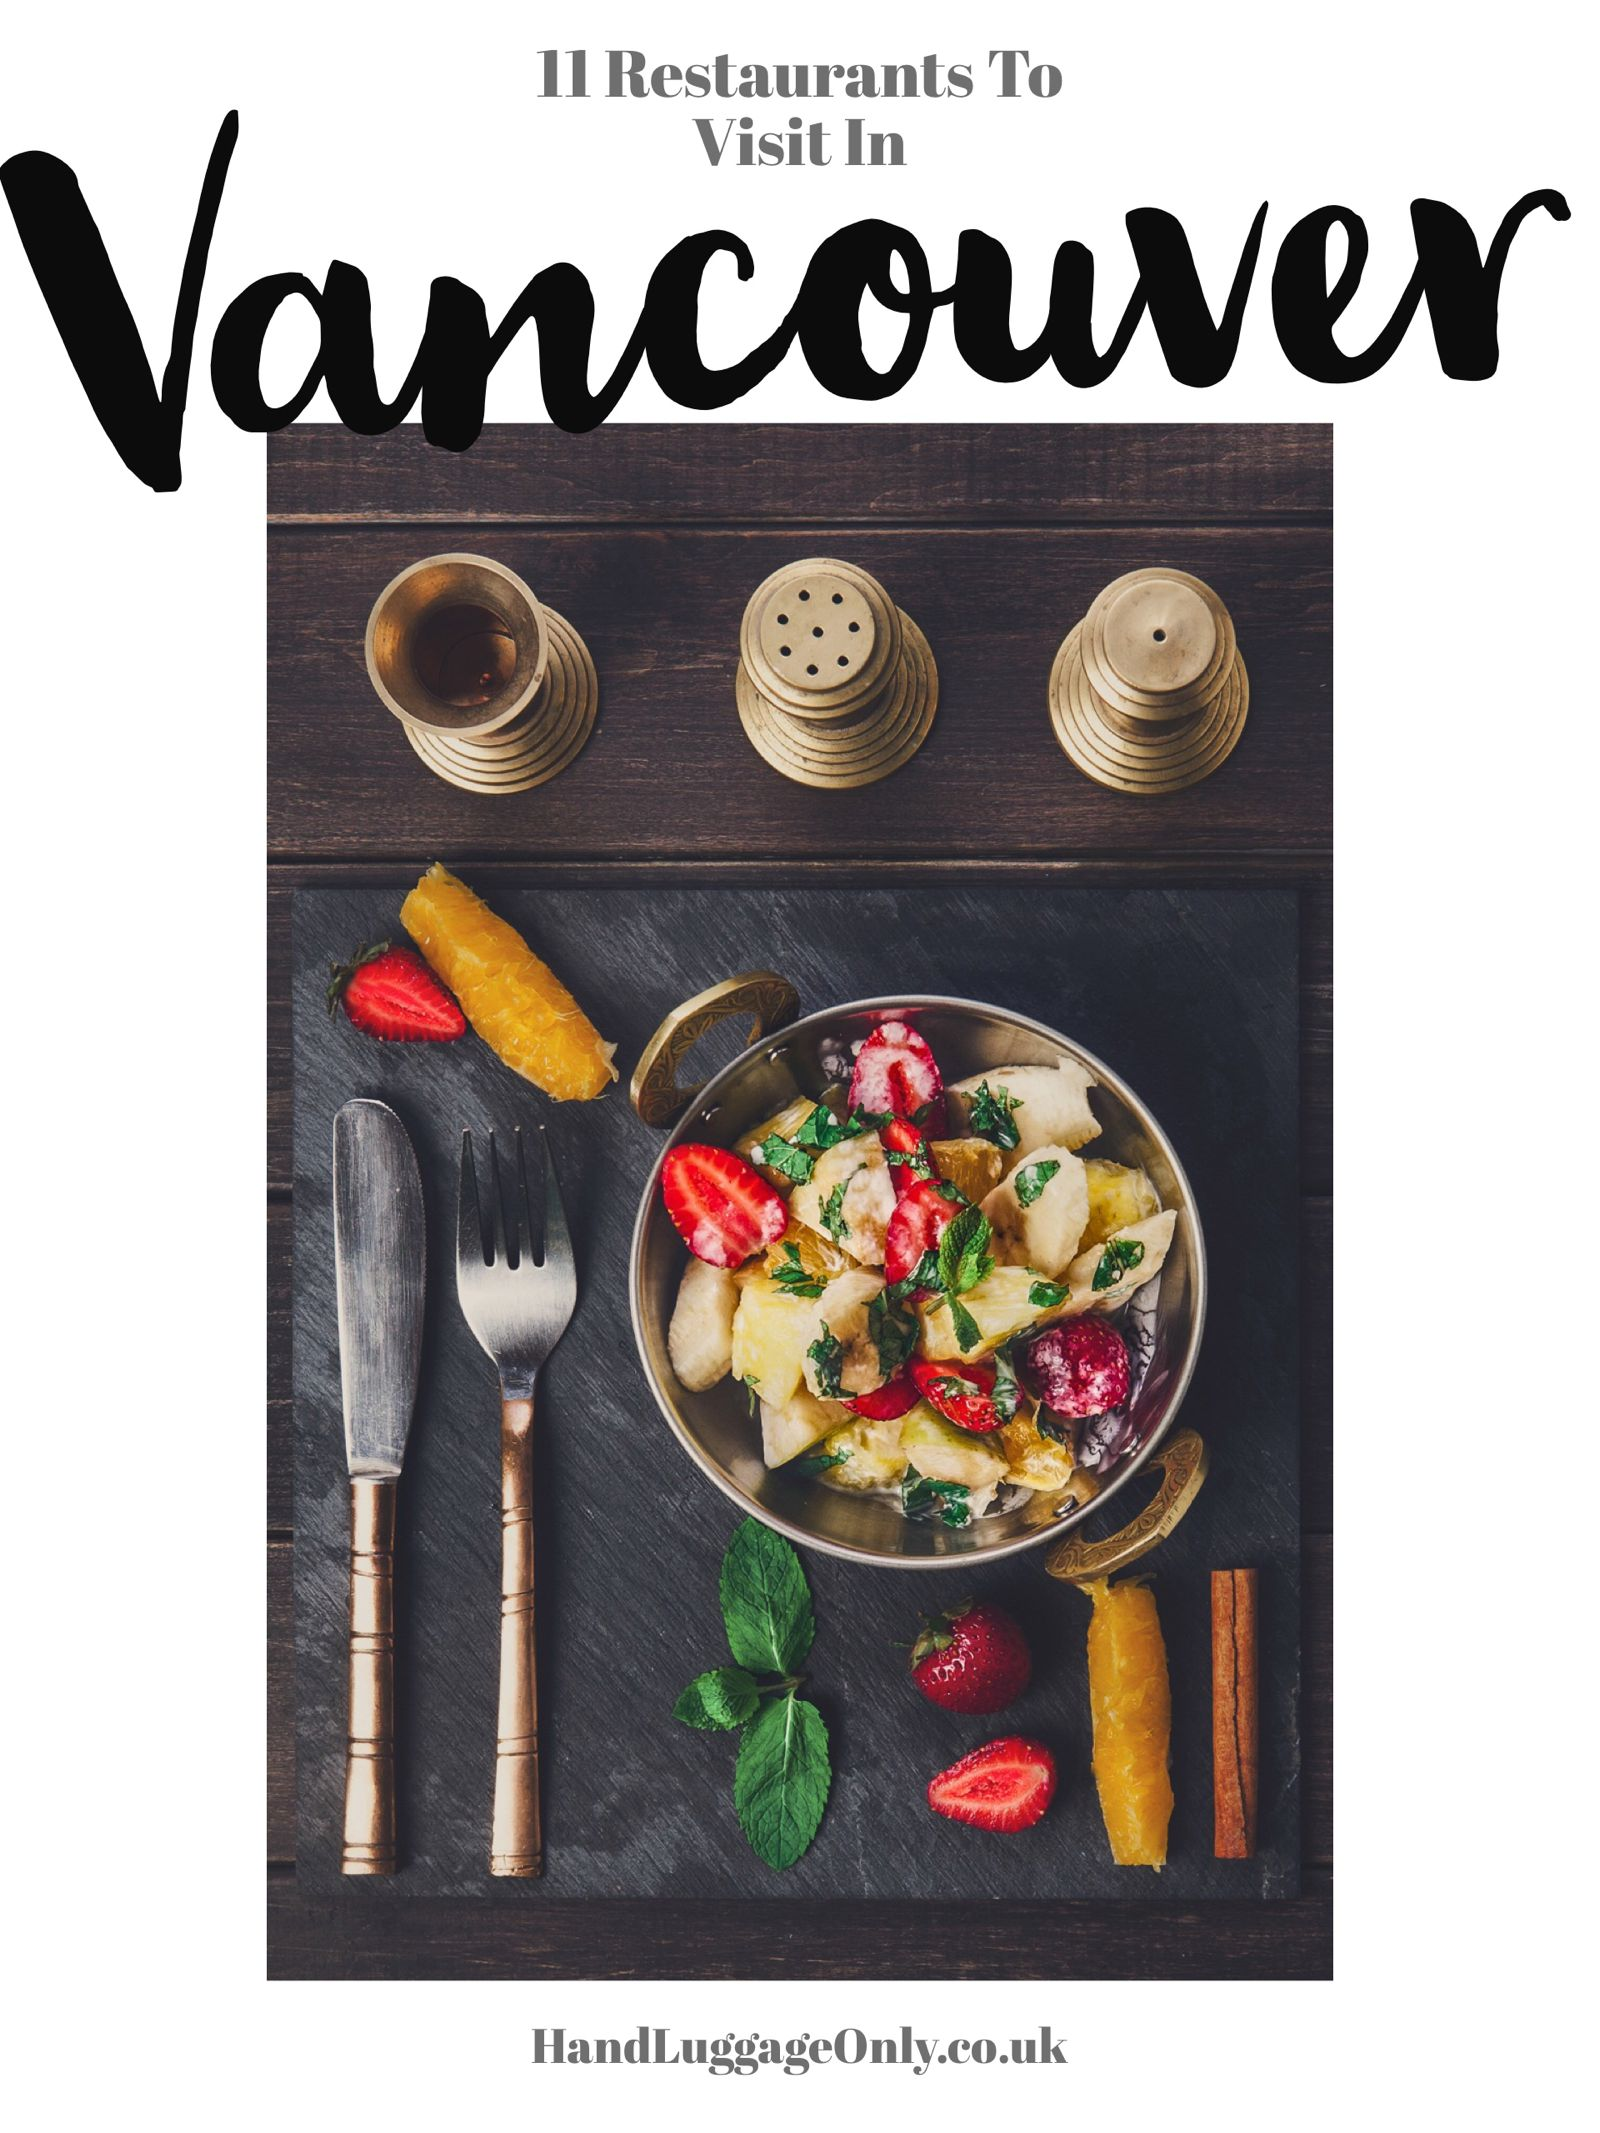 11 Delicious Restaurants To Eat At In Vancouver (1)